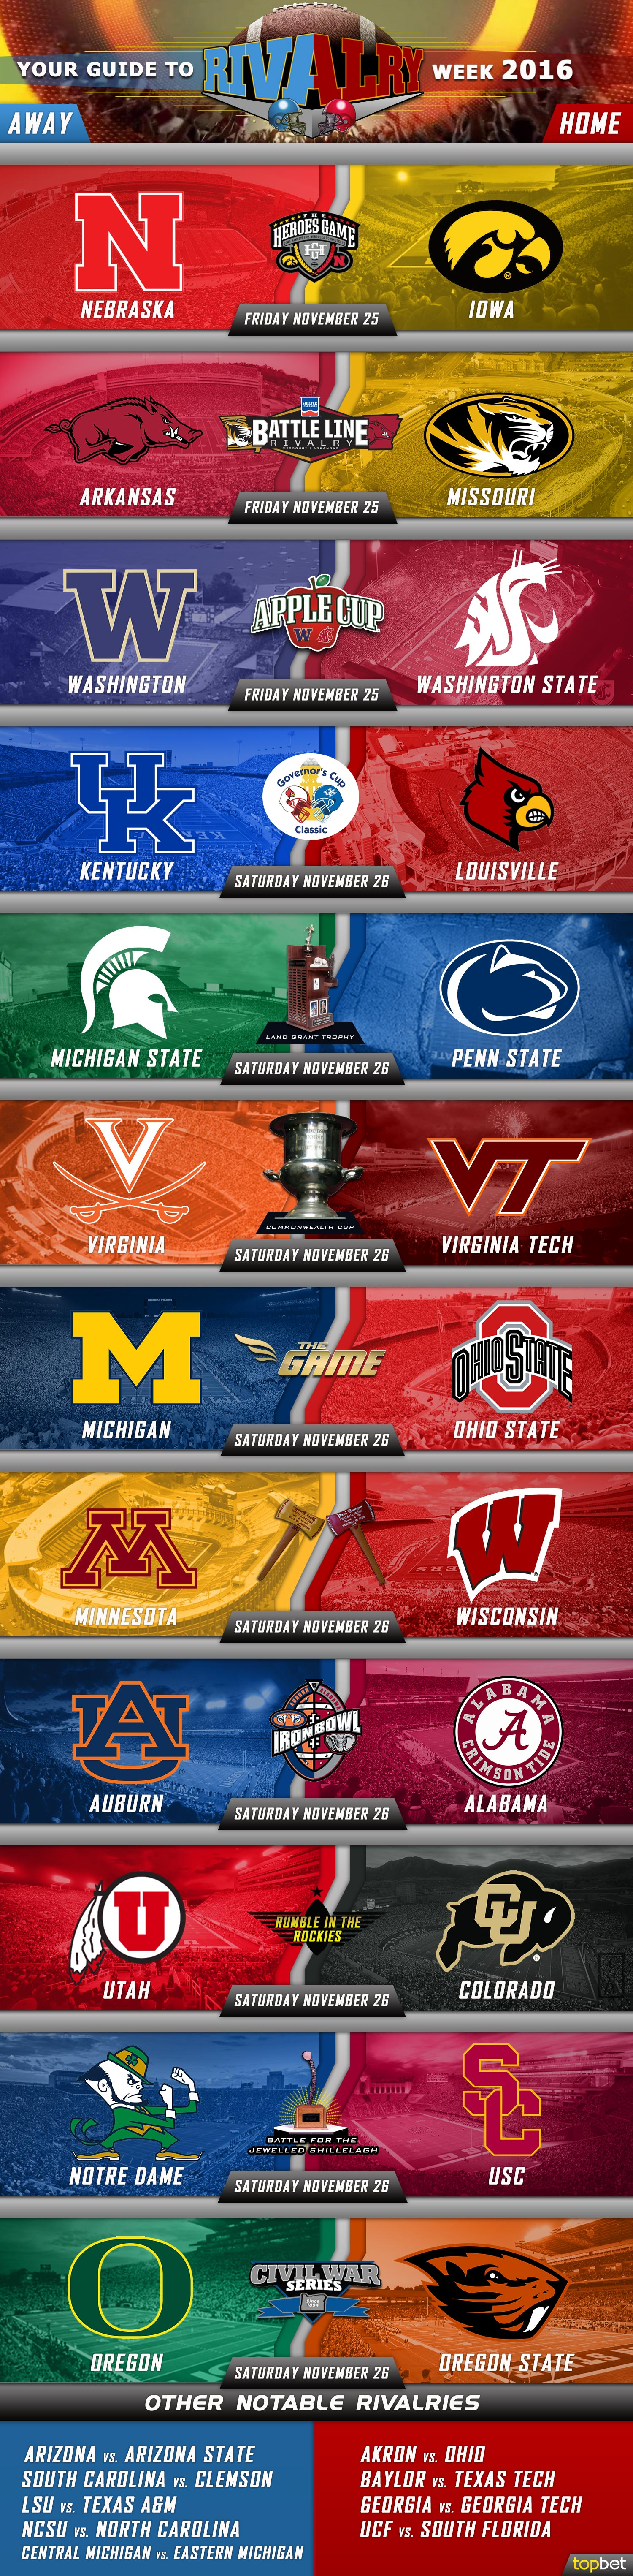 ncaa standings football college game times